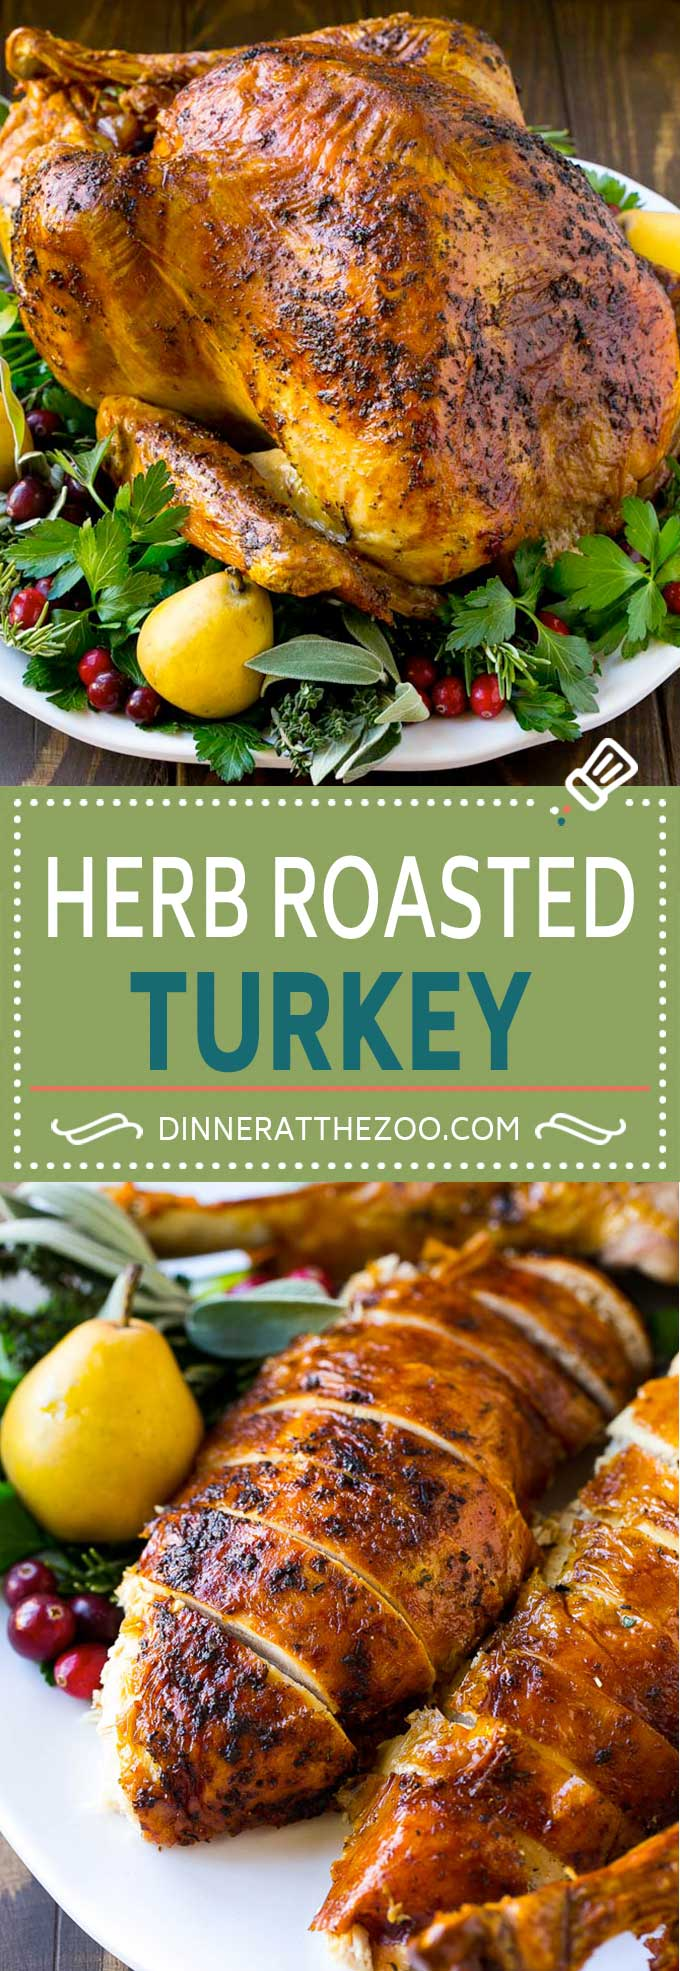 Herb Roasted Turkey Recipe | Baked Turkey | Thanksgiving Turkey | Christmas Turkey | Holiday Turkey Recipe | Butter Roasted Turkey Recipe #turkey #thanksgiving #christmas #dinner #dinneratthezoo